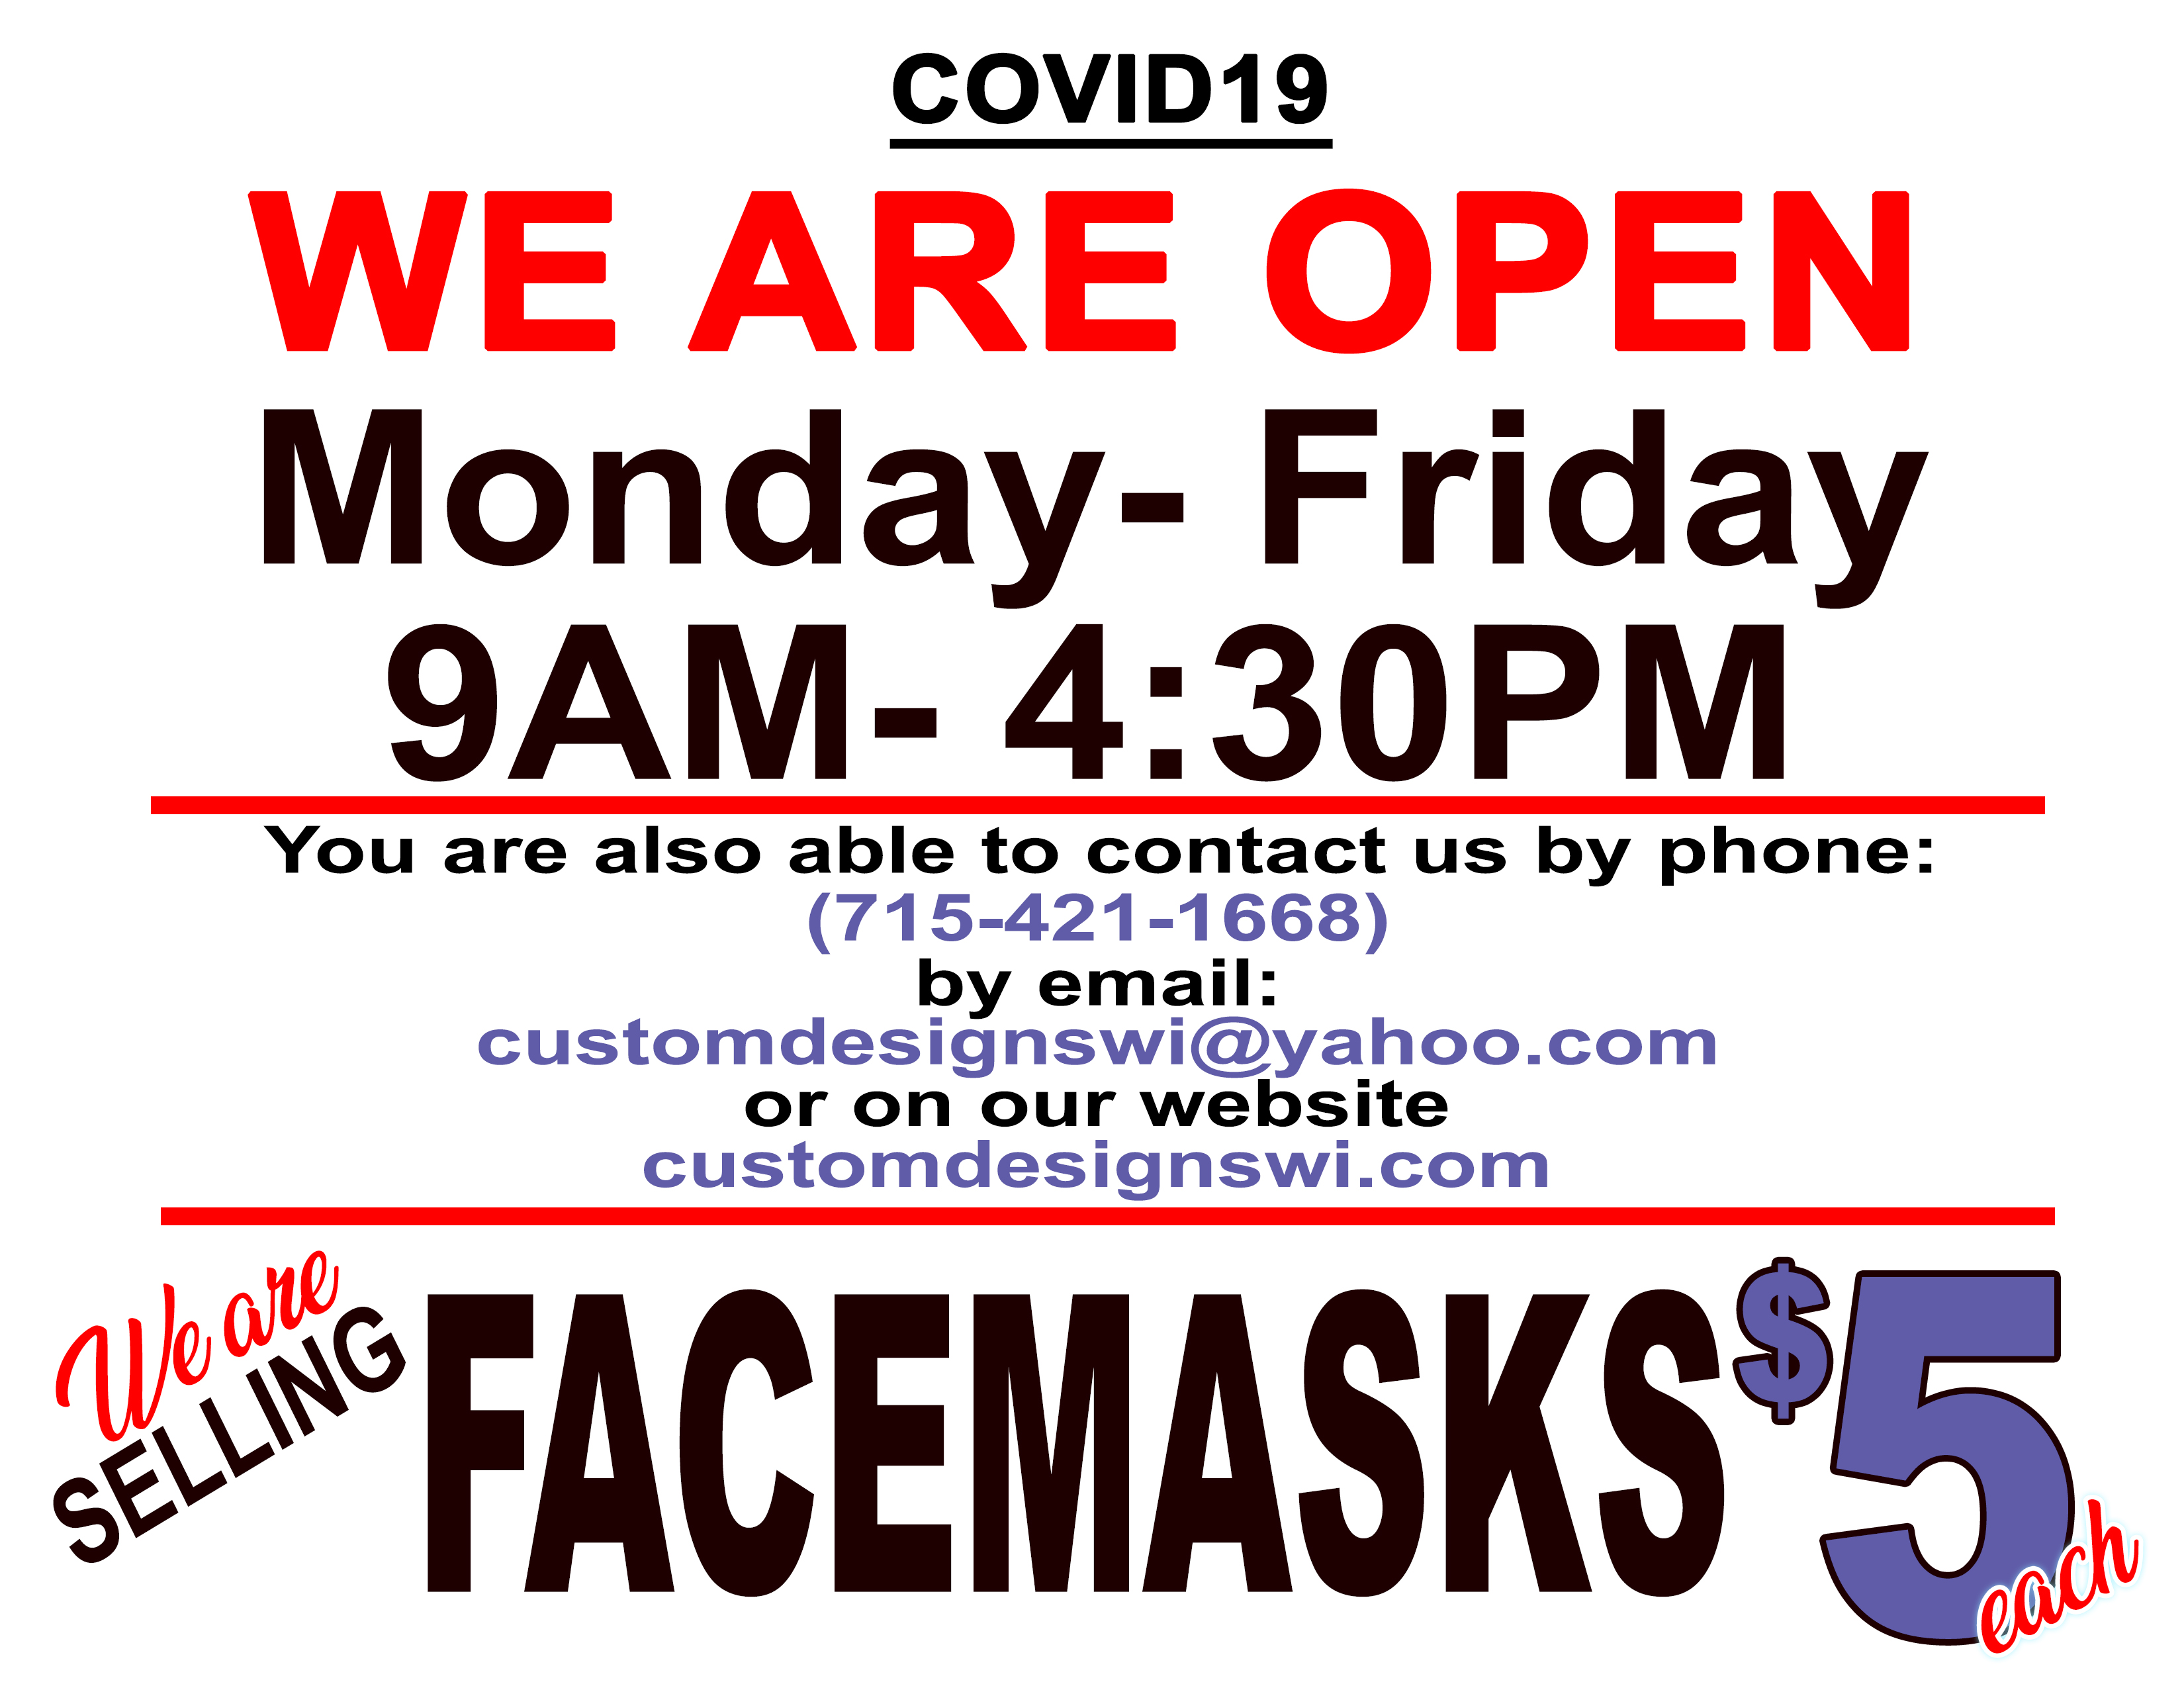 We are open and selling masks for $5.